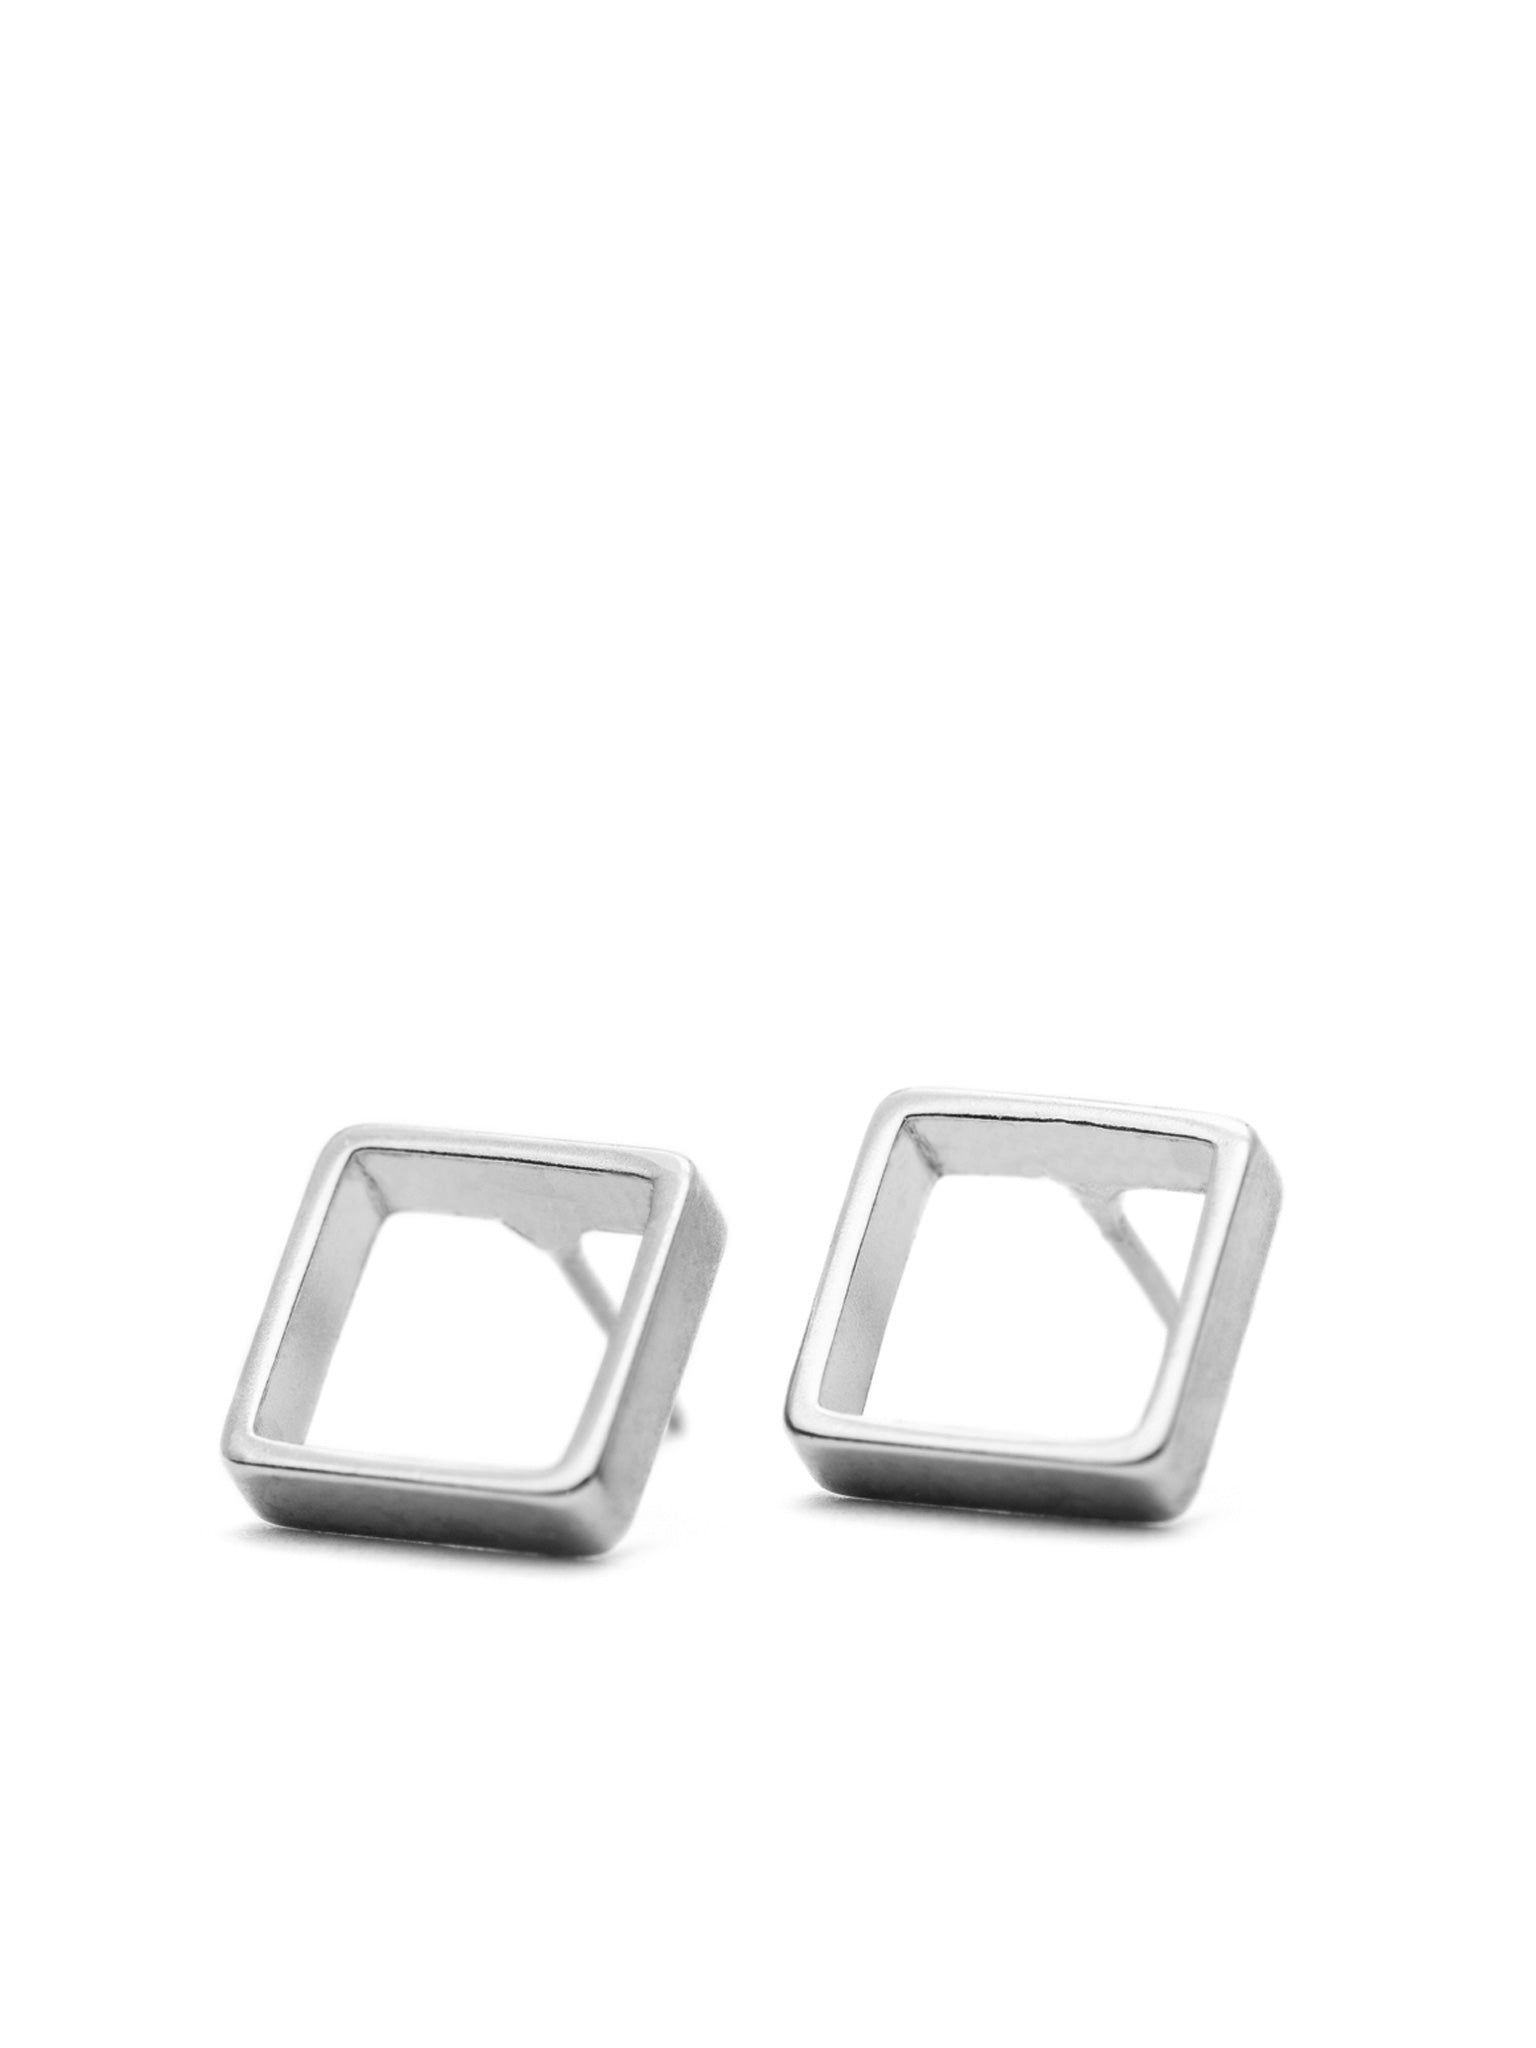 QUADRATIC - Small square earrings